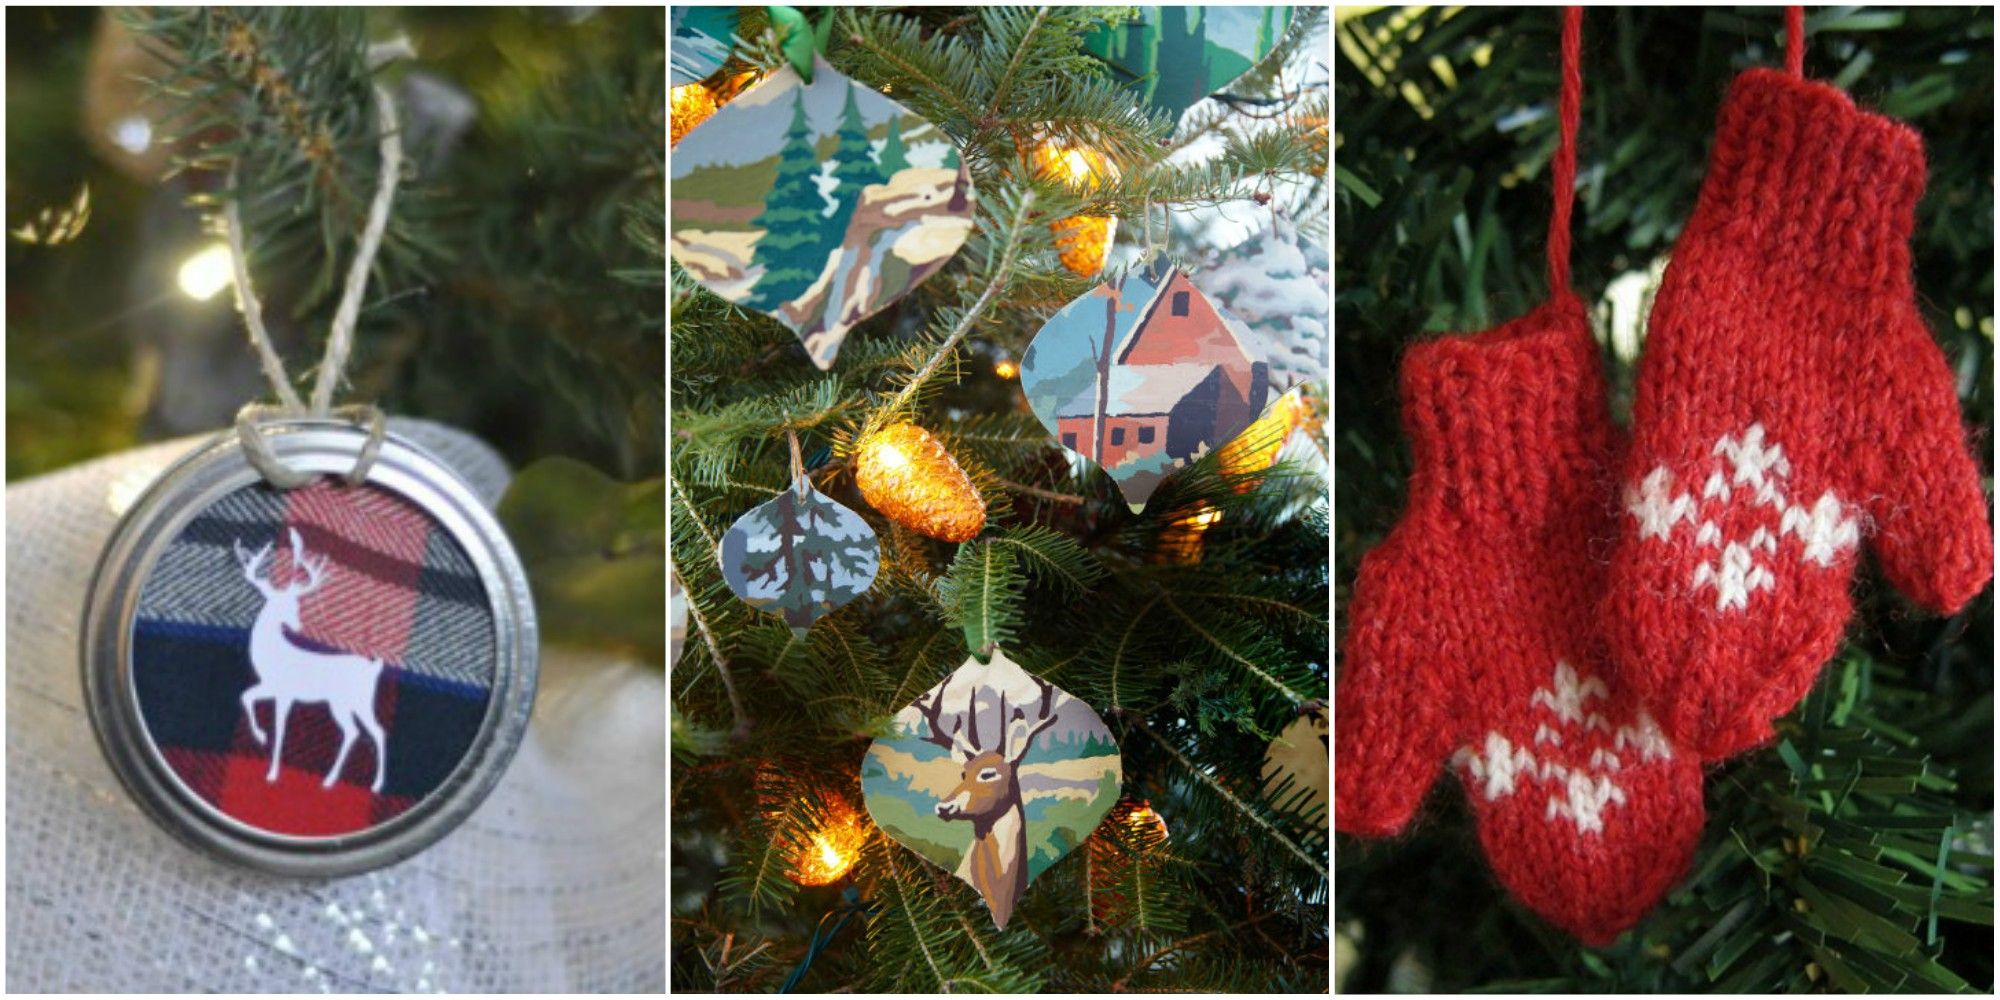 How To Make Christmas Ornaments Part - 22: 55 Homemade Christmas Ornaments - DIY Crafts With Christmas Tree Ornaments